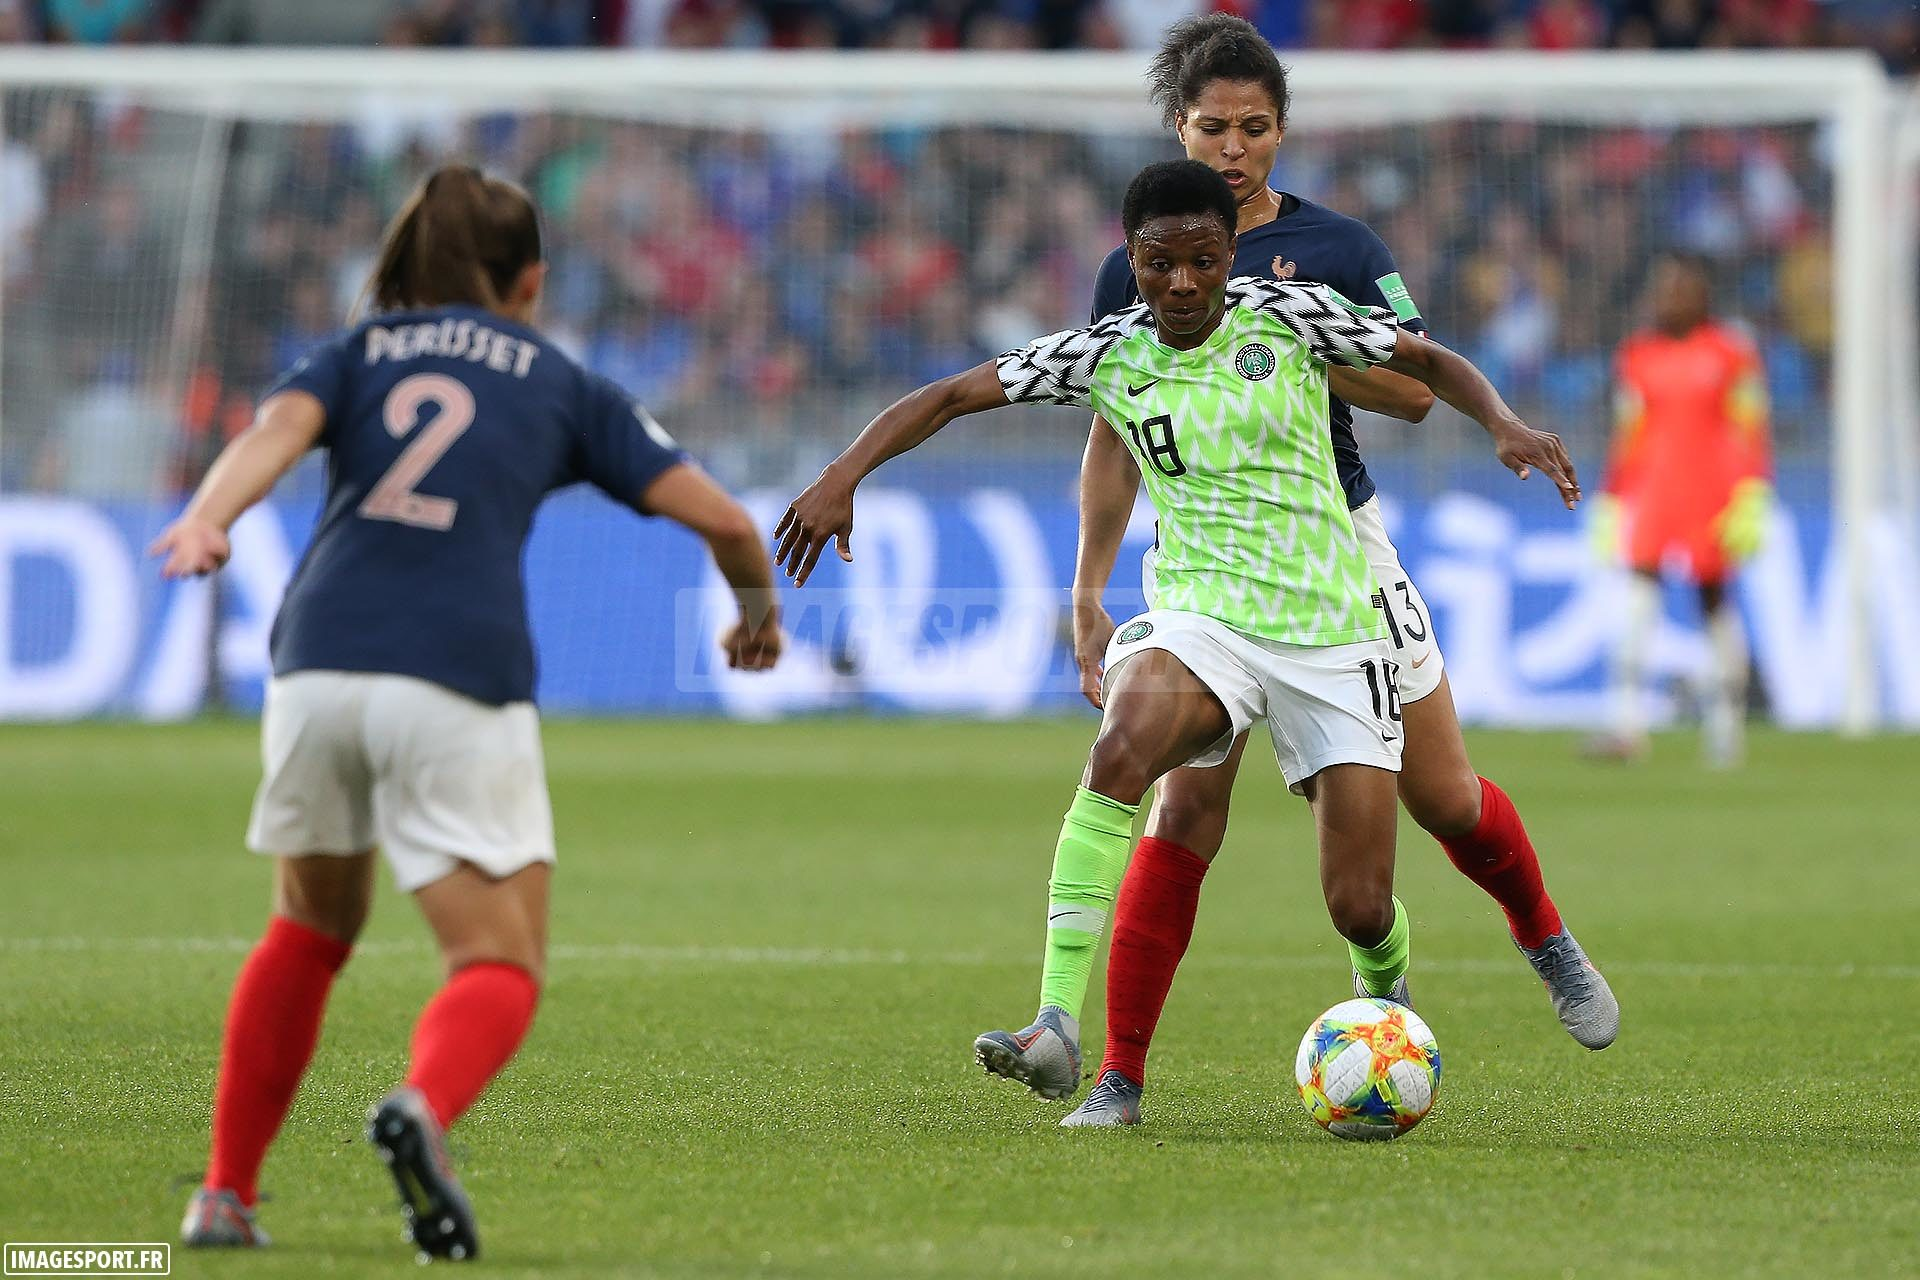 coupe-du-monde-19-nigeria-france_10